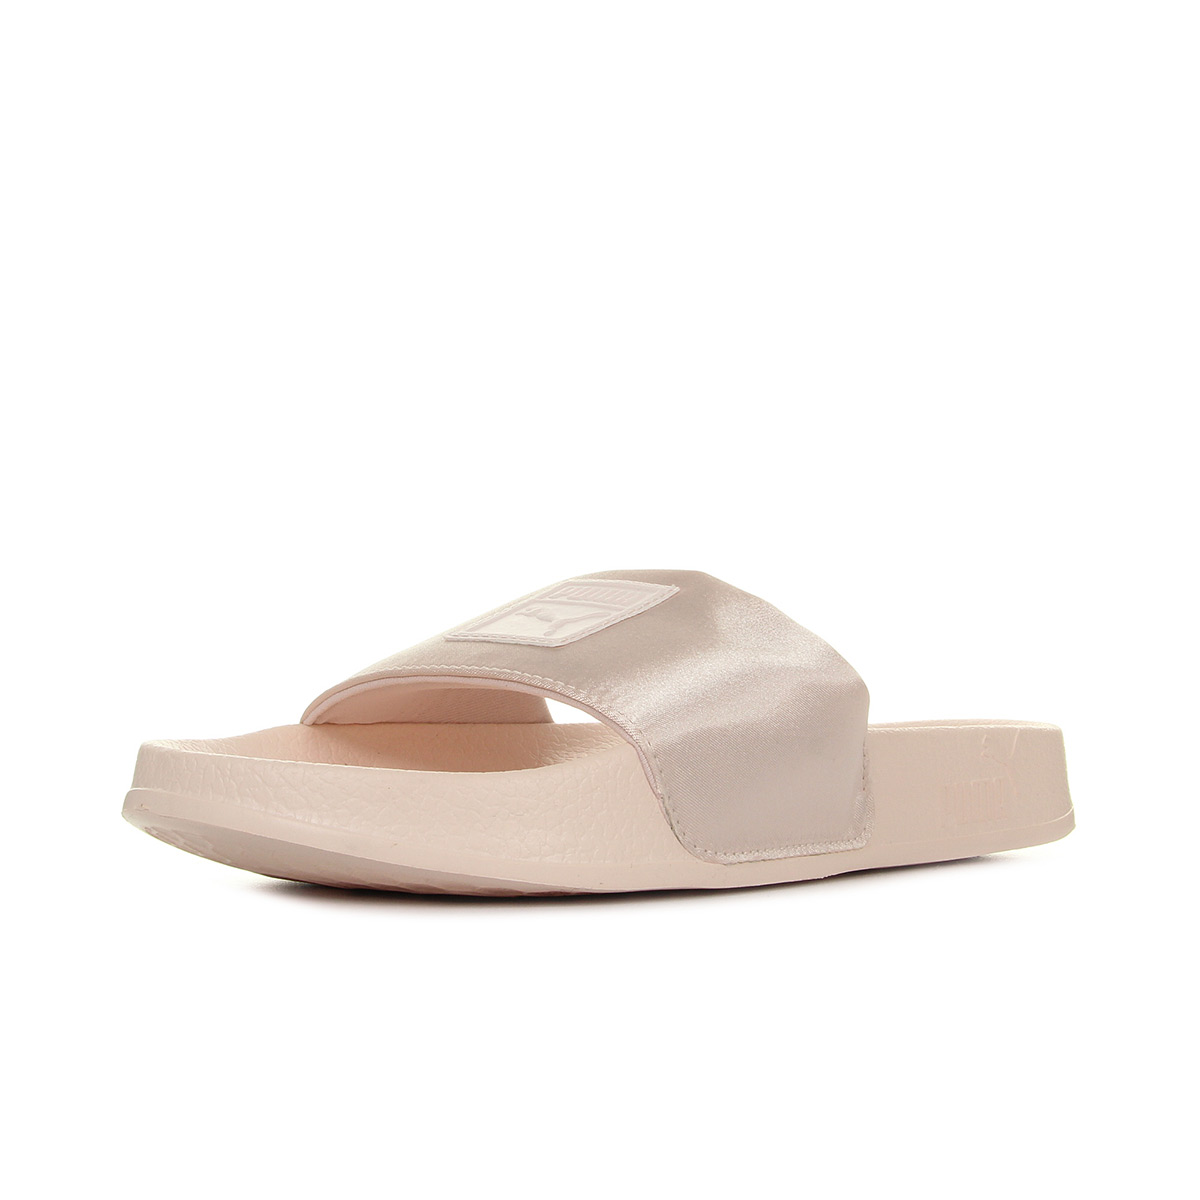 Sandales Nu Pieds Puma femme Leadcat Satin Pearl Wn's taille Rose Synth tique A